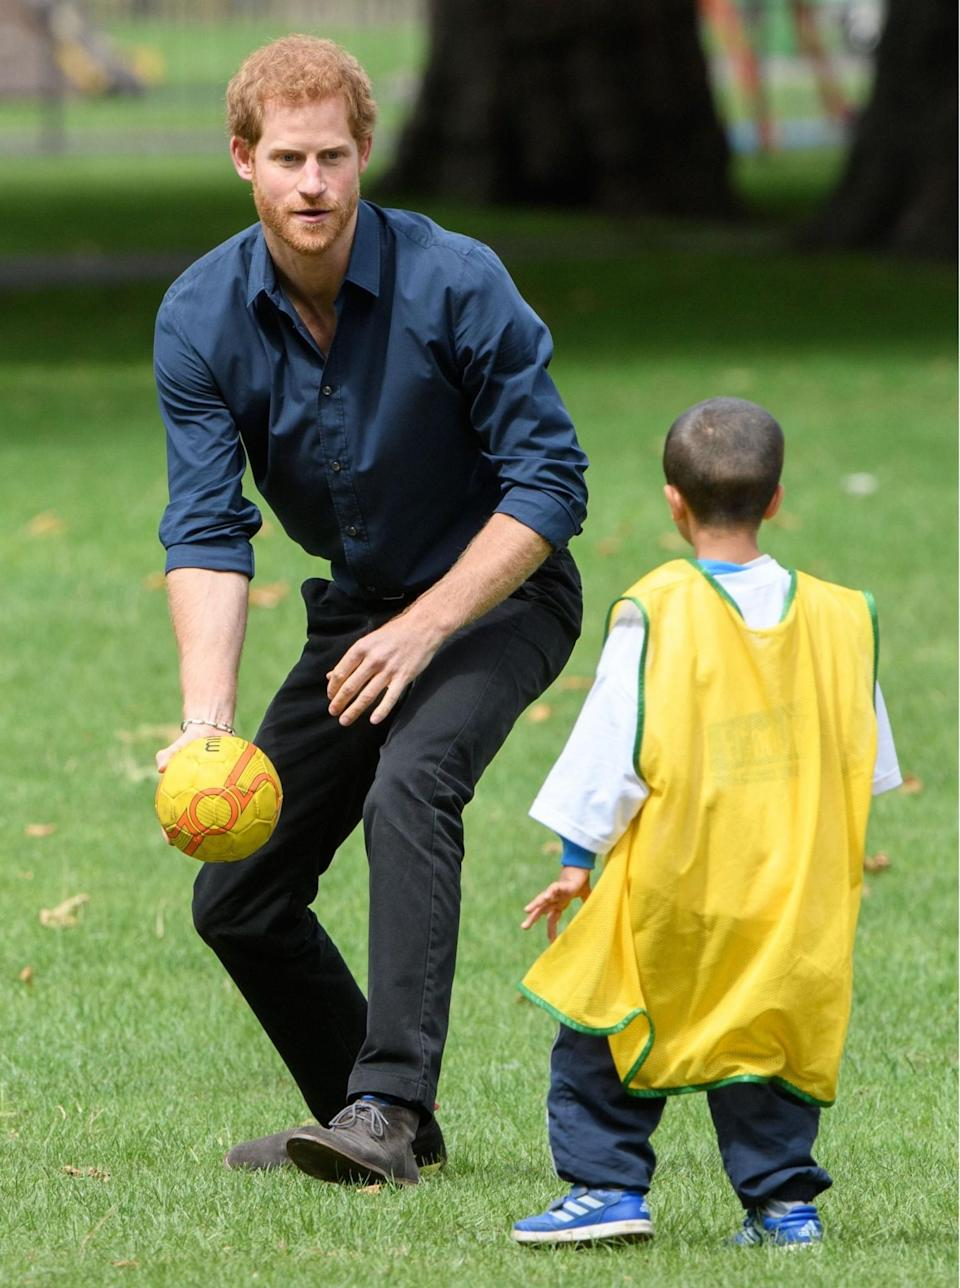 <p><span>Prince Harry plays with a young boy at StreetGames' Fit and Fed initiative in Newham, London. (Rex features)</span> </p>